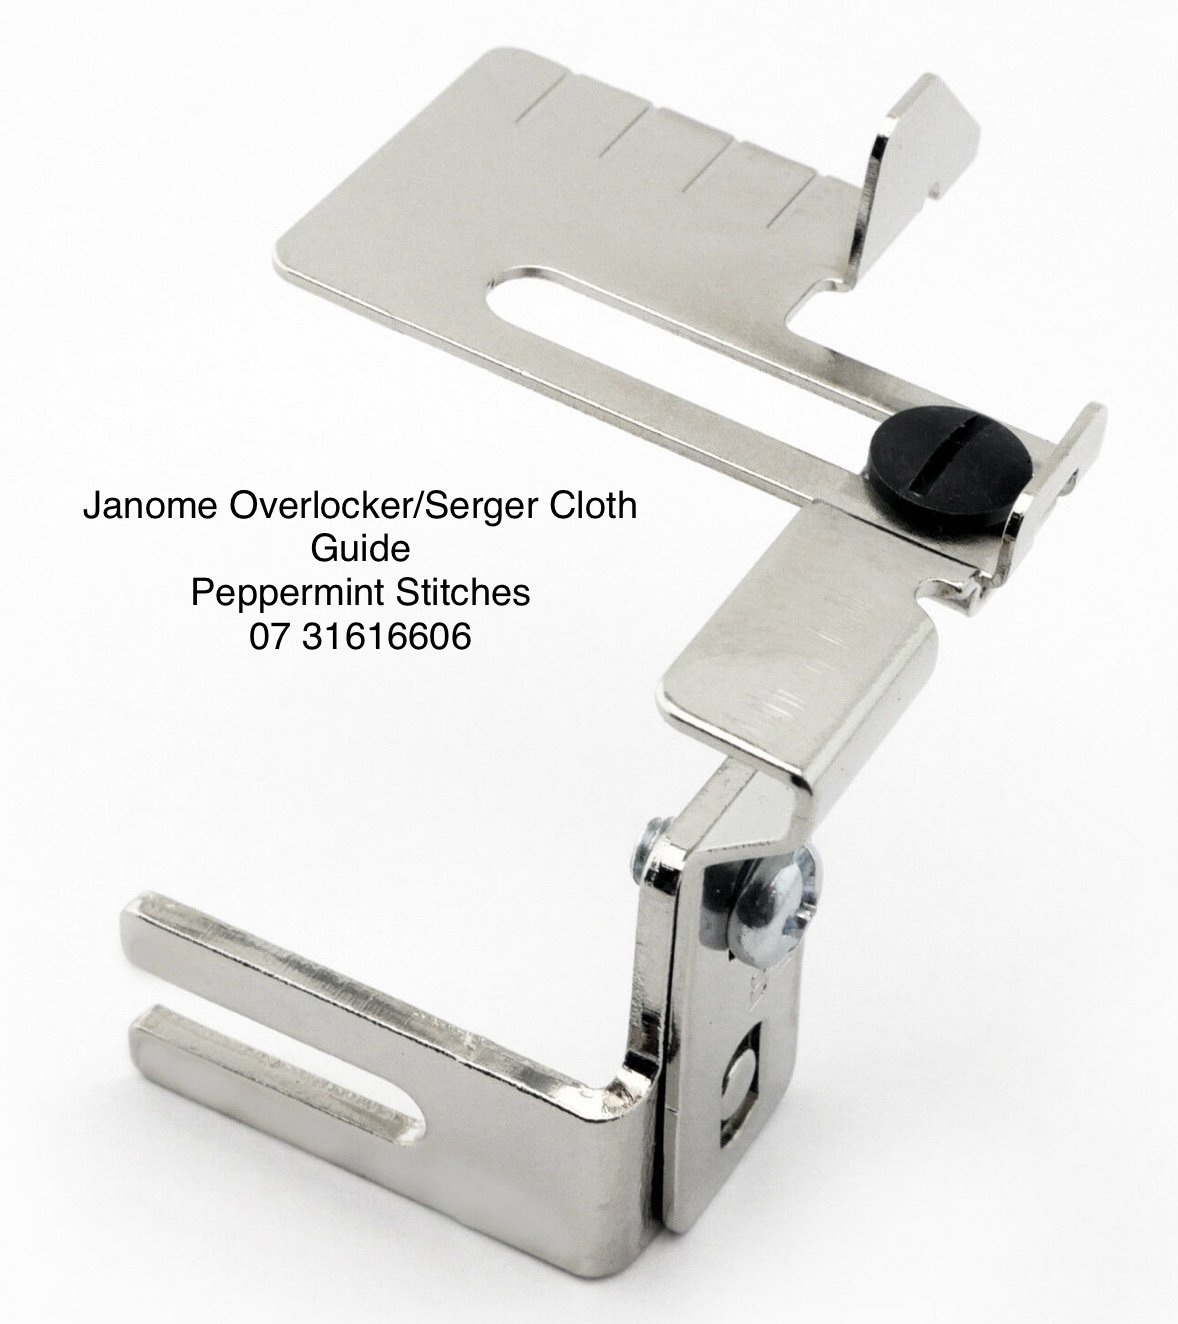 Janome Overlocker/Serger Cloth Guide